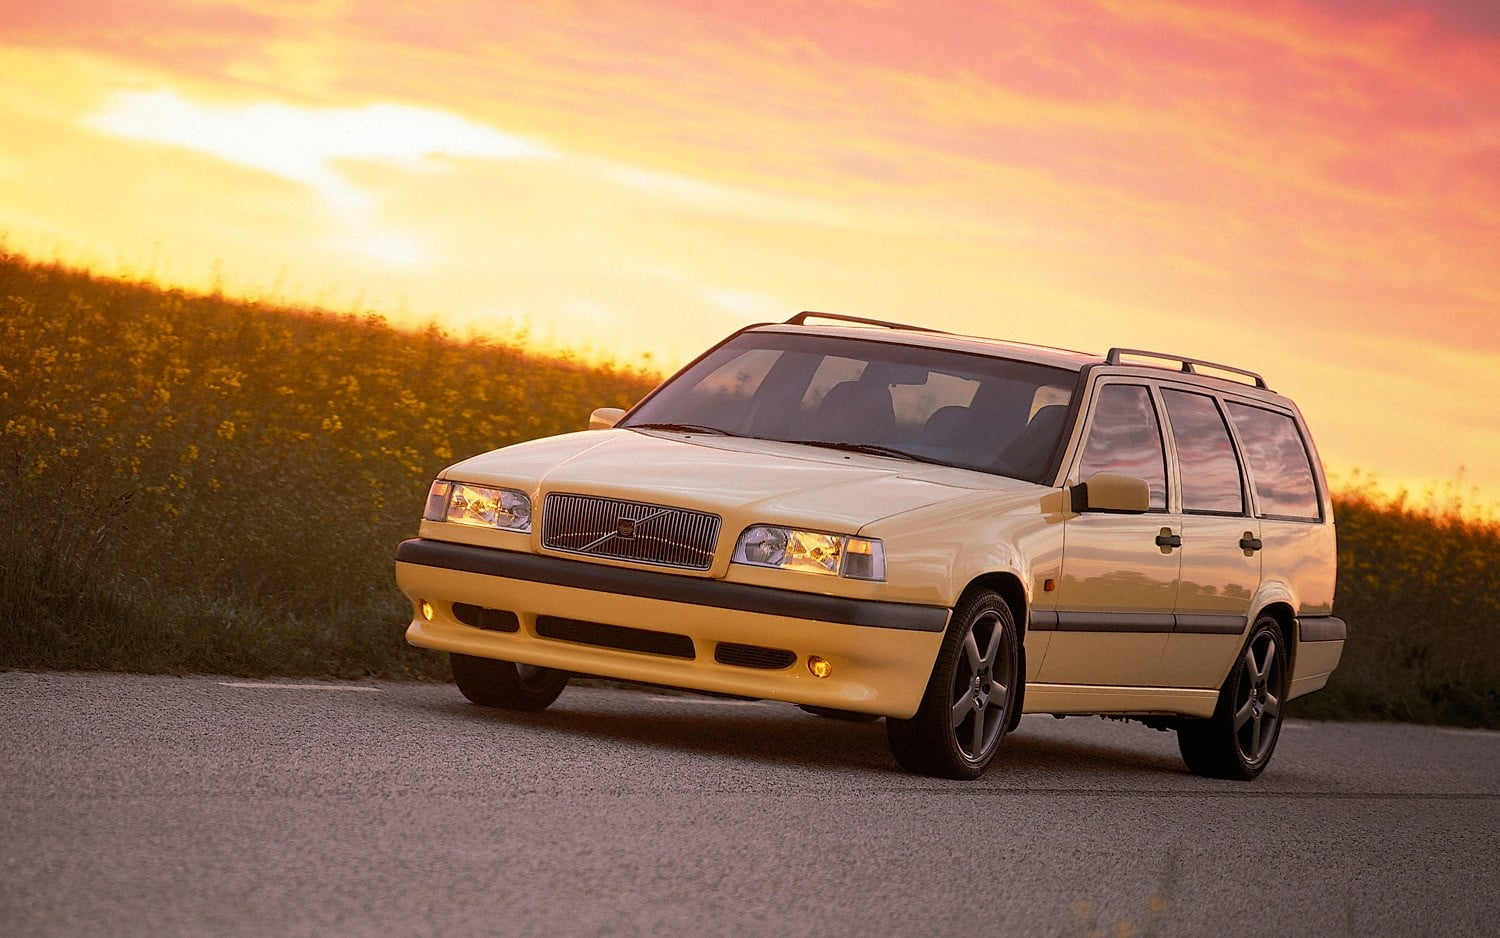 favorite station wagons from history 1995 volvo 850 t5 r wagon front three quarter lights on